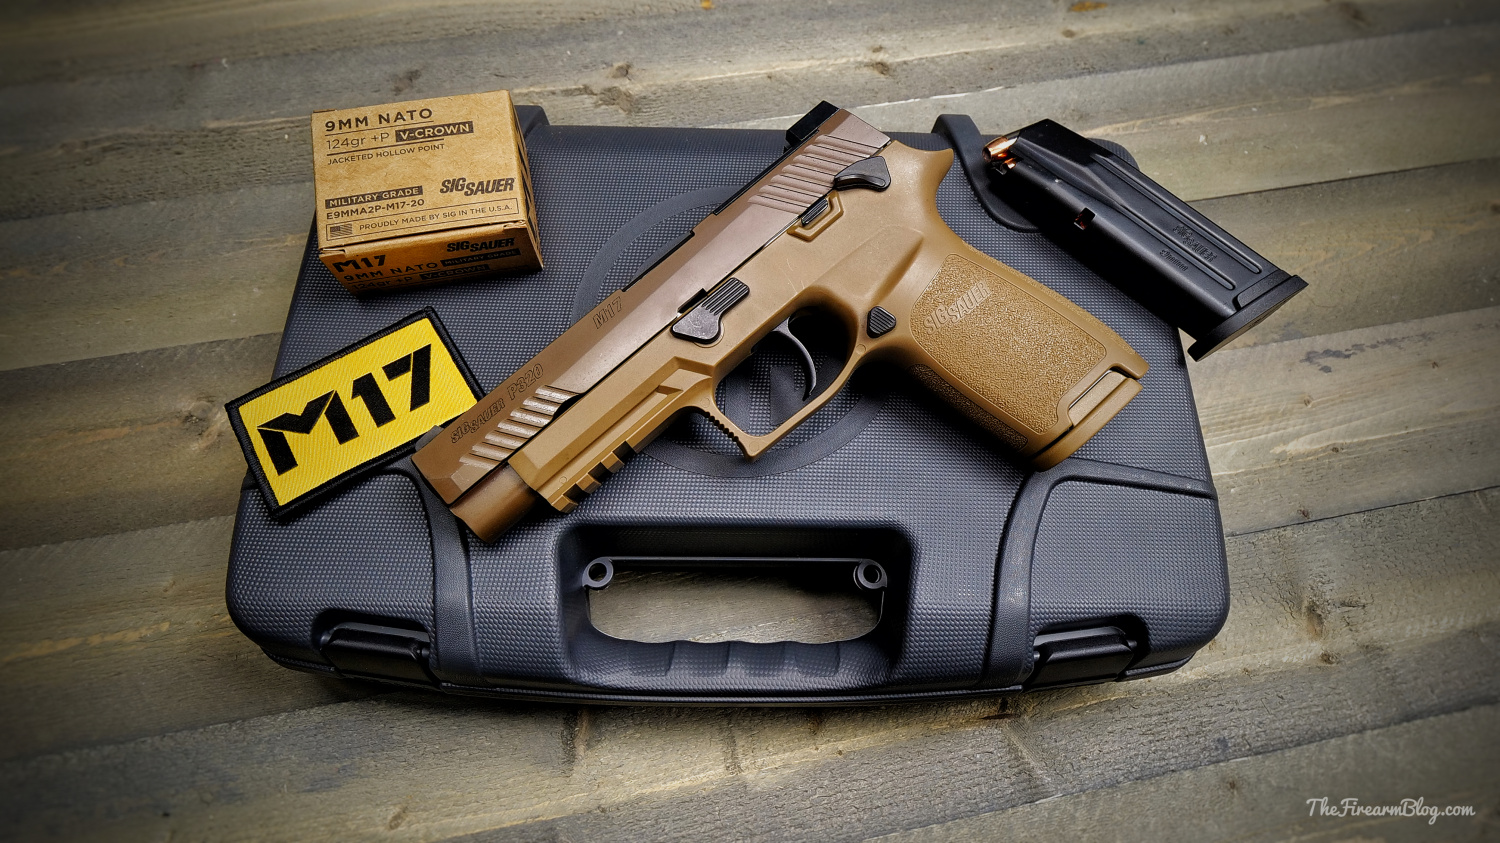 Bullet Points: Top 5 Rounds From Sig Sauer Ammunition